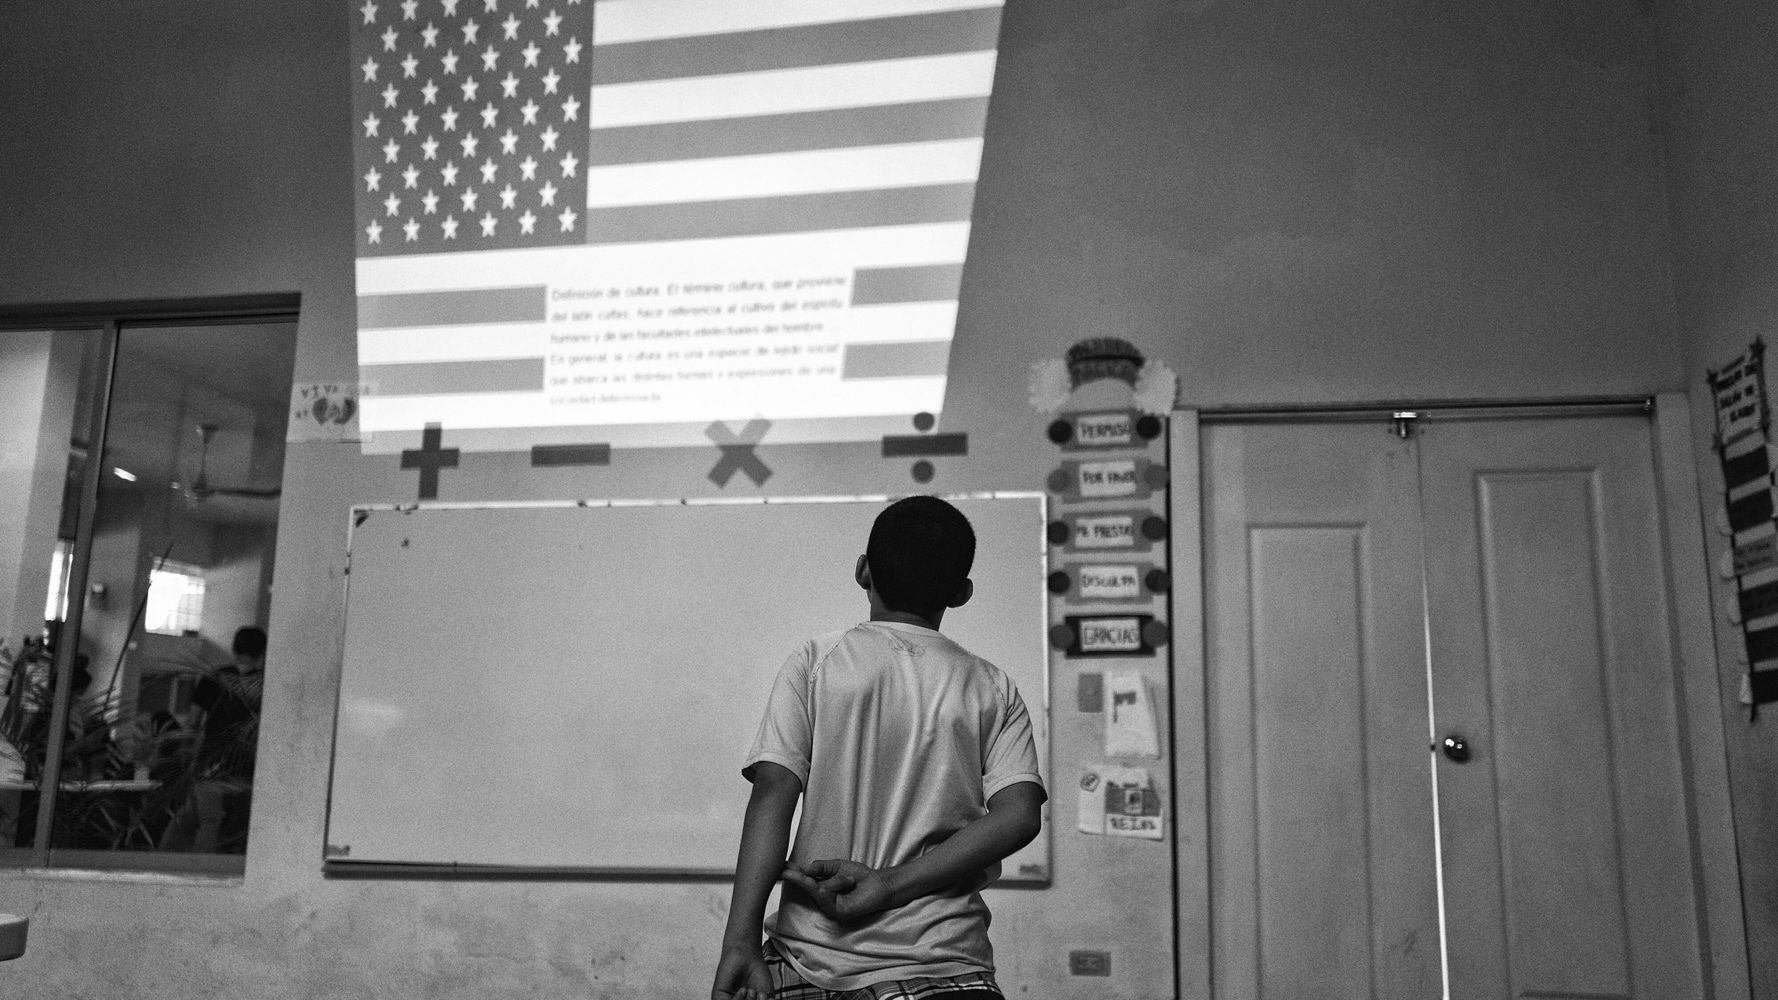 Here's What Life Is Like For Child Migrants At Mexico's Southern Border